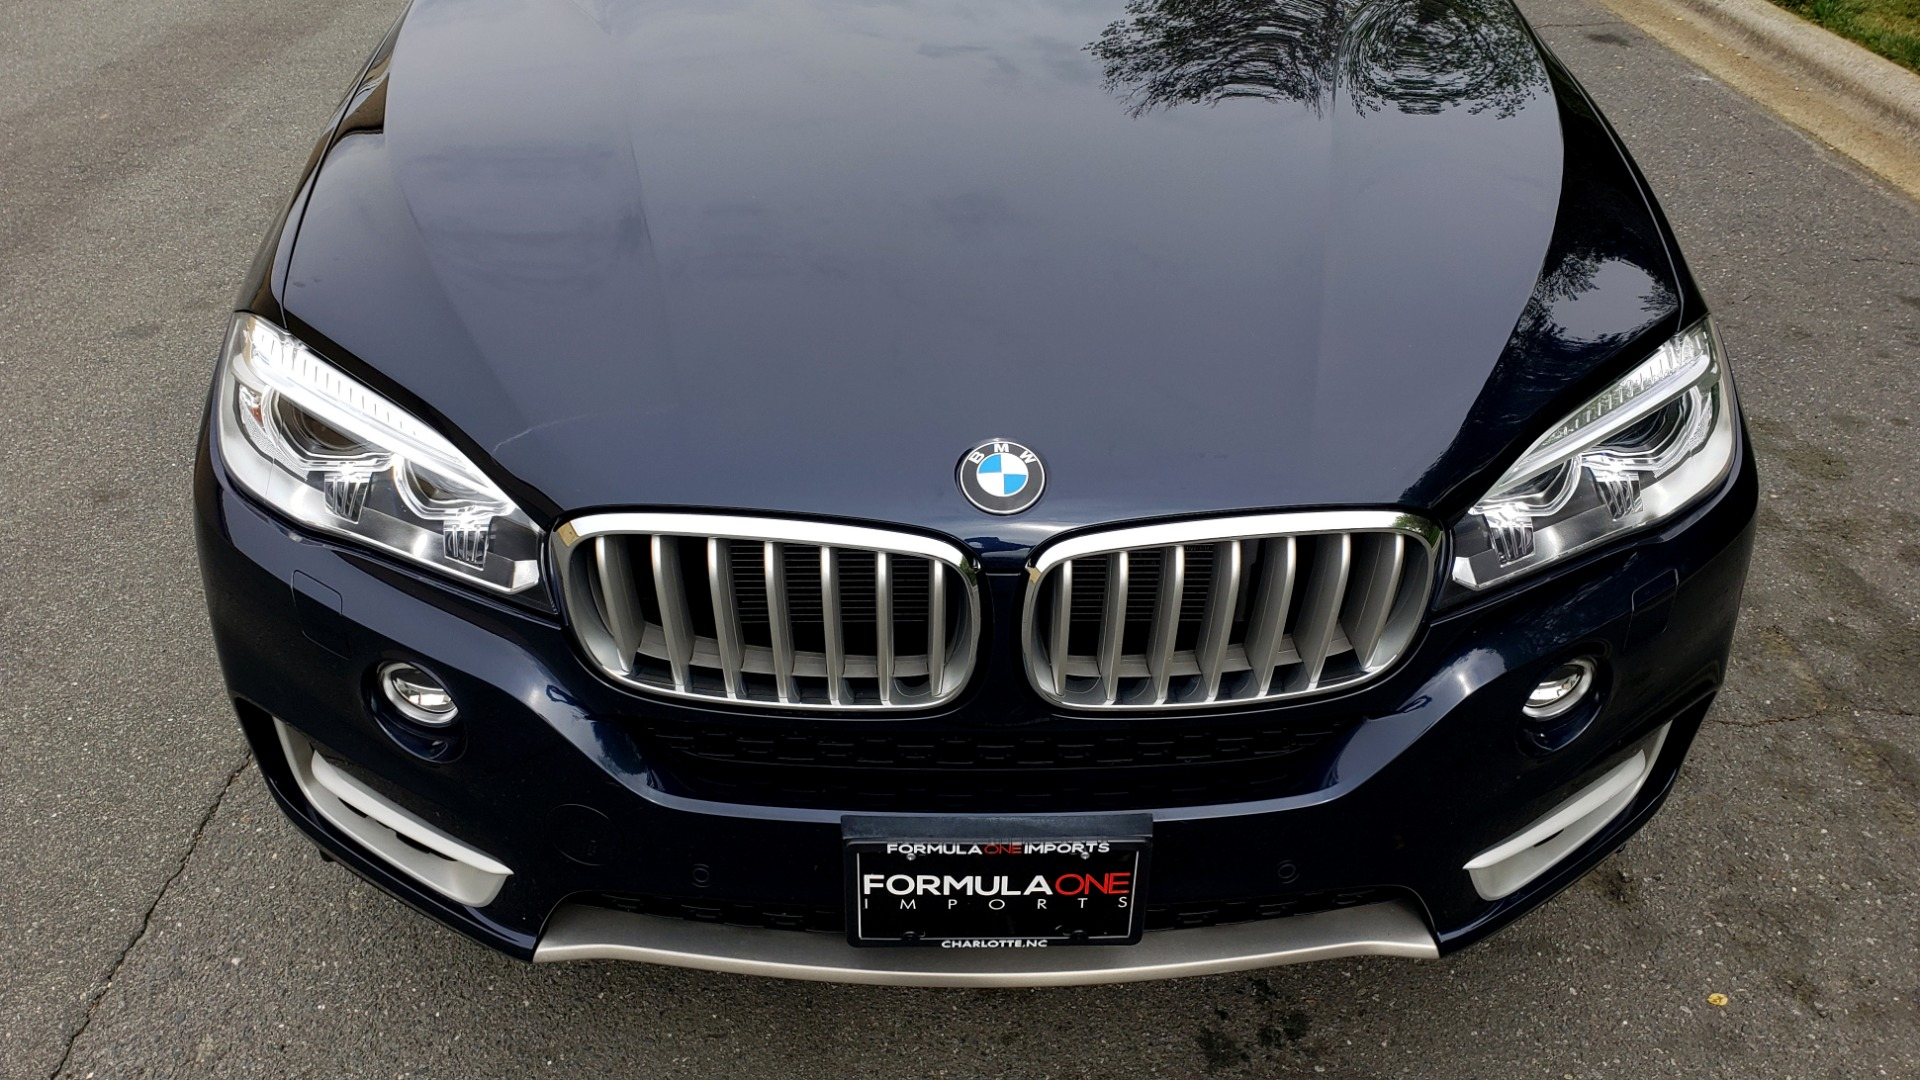 Used 2017 BMW X5 XDRIVE35I PREMIUM / NAV / SUNROOF/ CLD WTHR / HARMAN/KARDON / REARVIEW for sale $30,595 at Formula Imports in Charlotte NC 28227 14